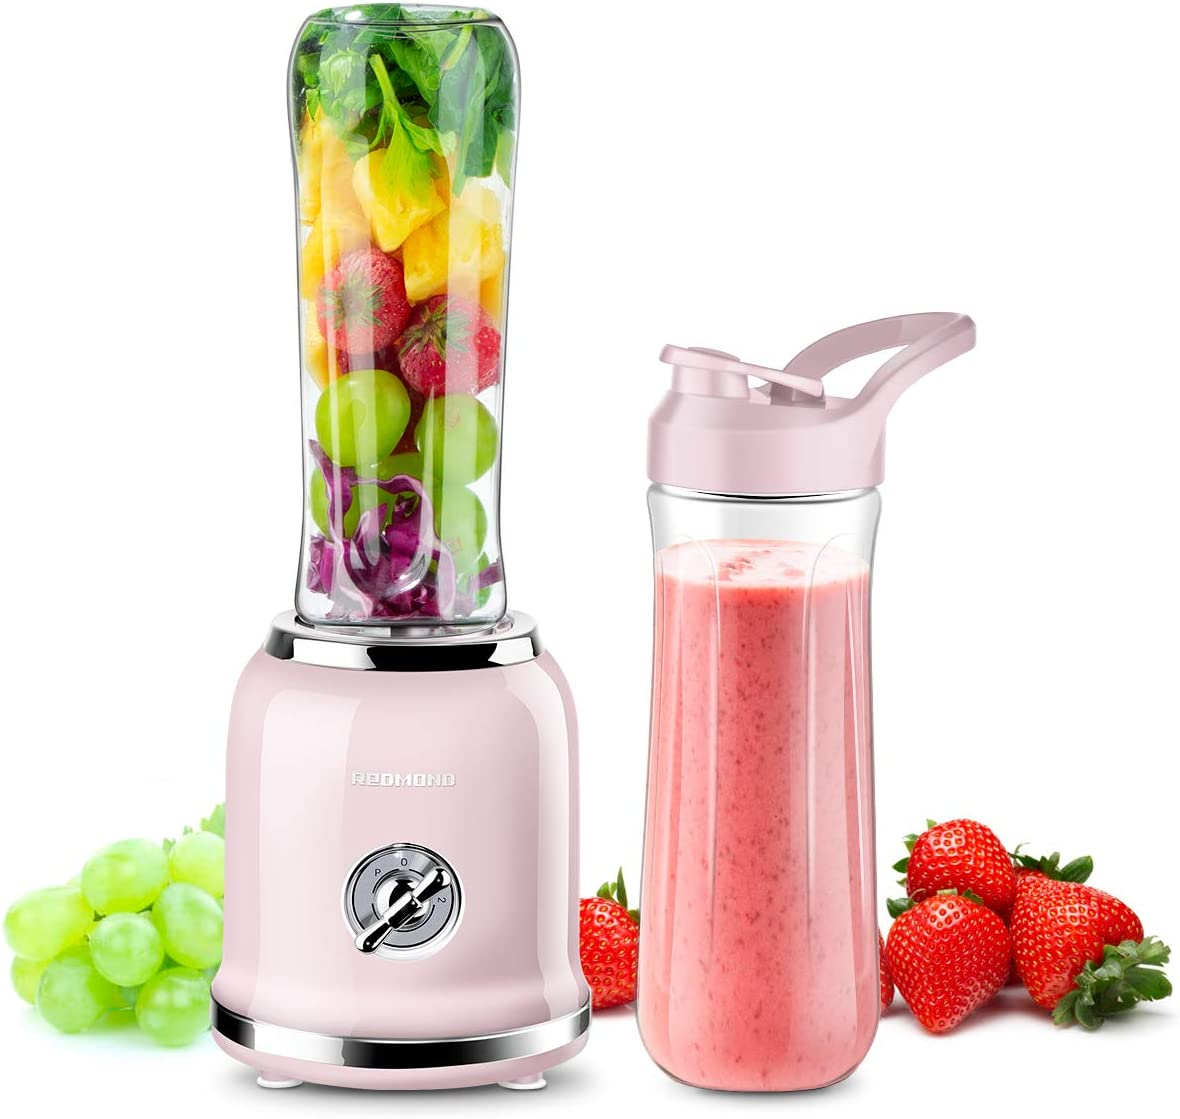 REDMOND Personal Blender Countertop Smoothie Blender 21000RPM with 2 x 20oz Travel Bottle 2 Speed, Pulse Function 6 Stainless Steel Blades BPA Free Pink